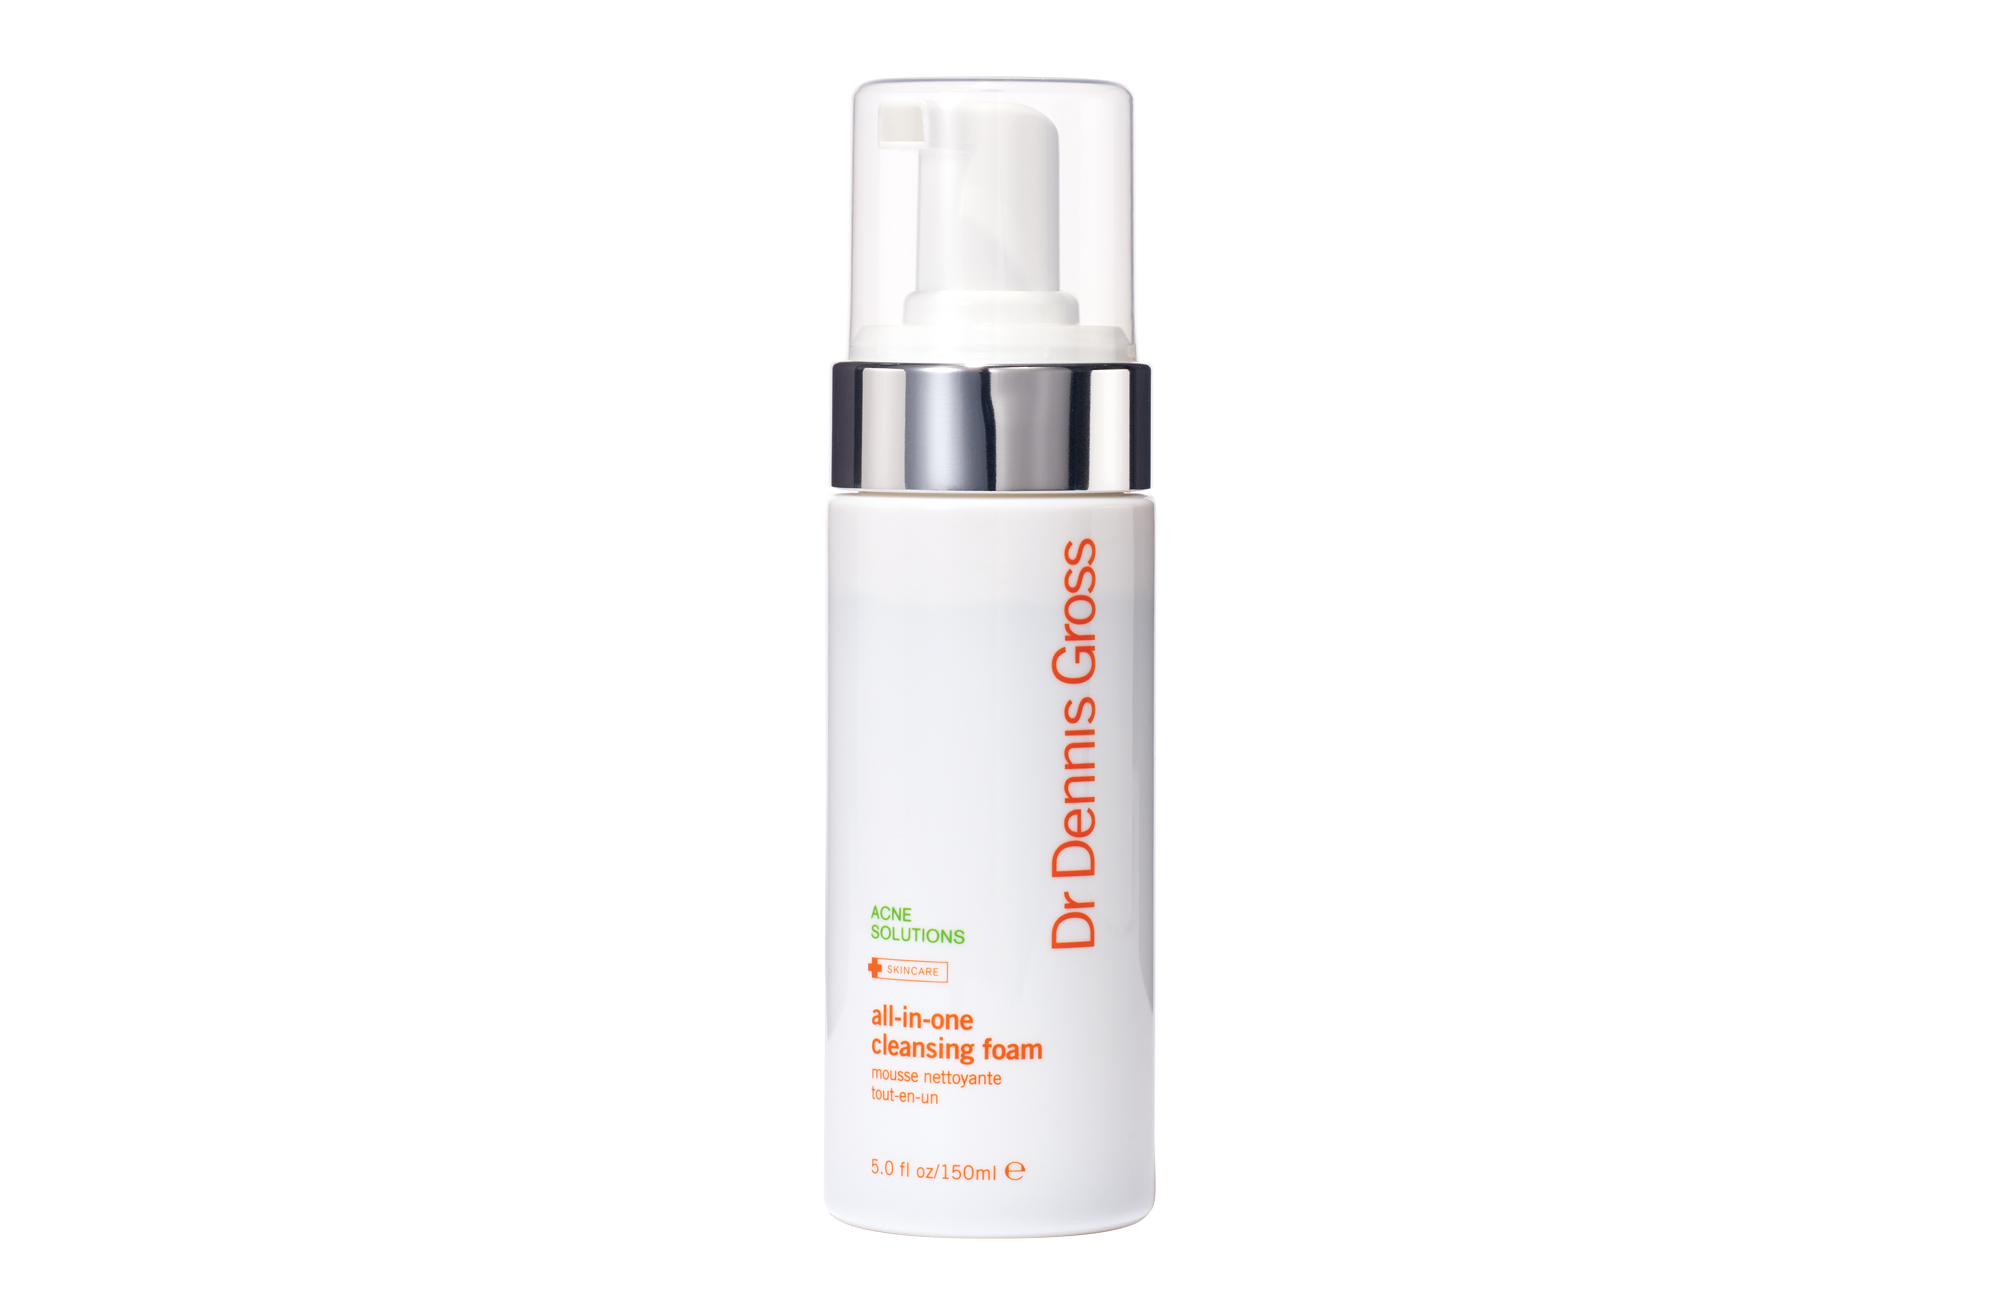 Dr Dennis Gross Skincare All-in-One Cleansing Foam